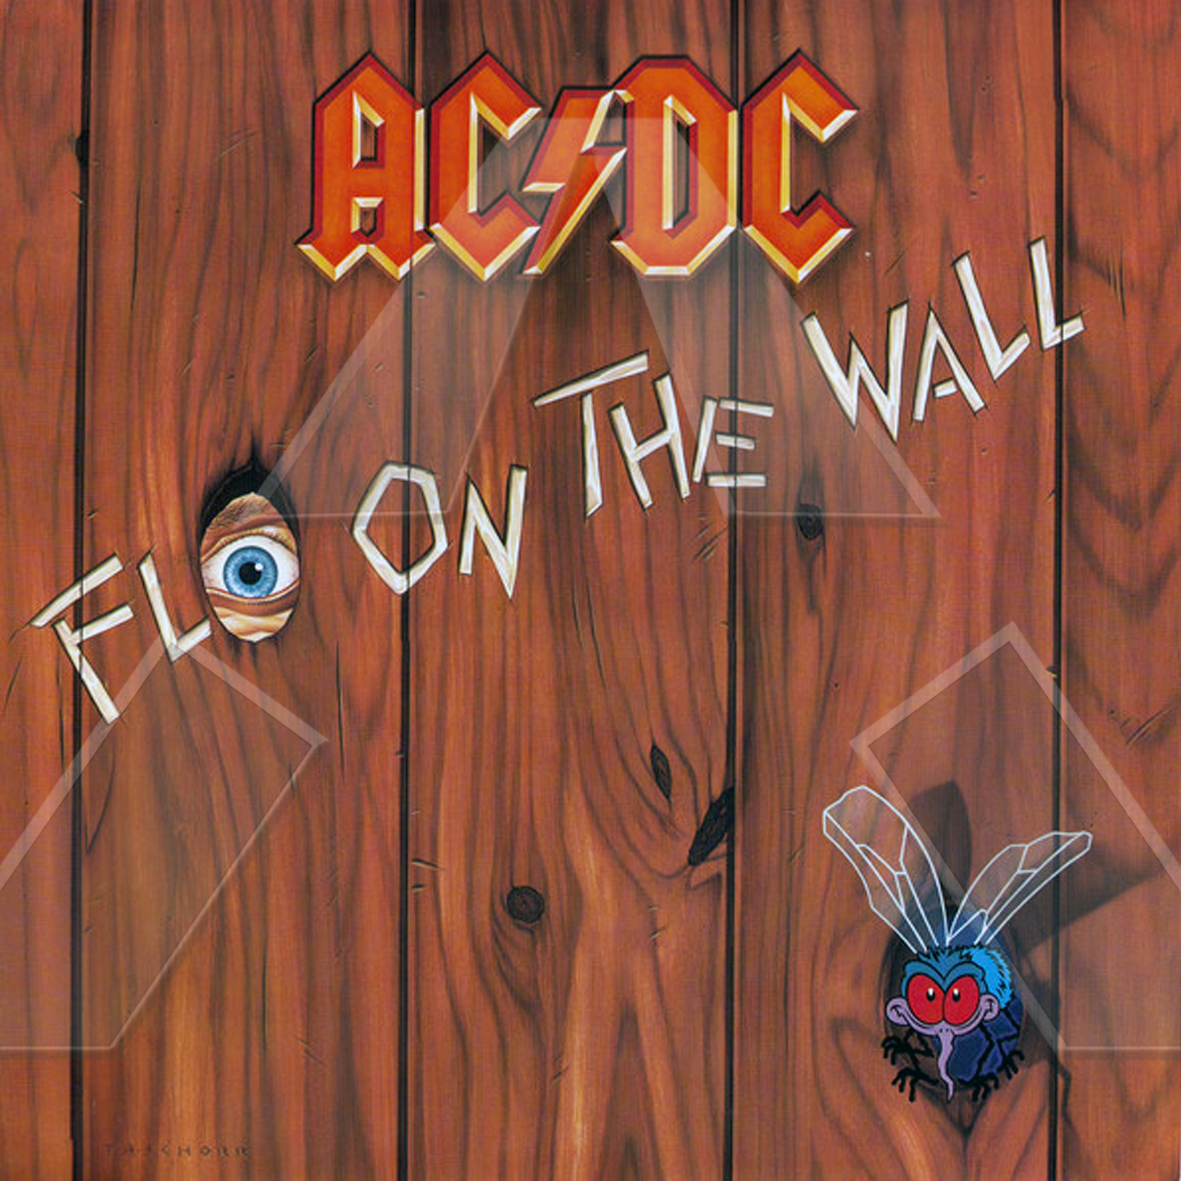 AC/DC ★ Fly on the Wall (vinyl album EU)